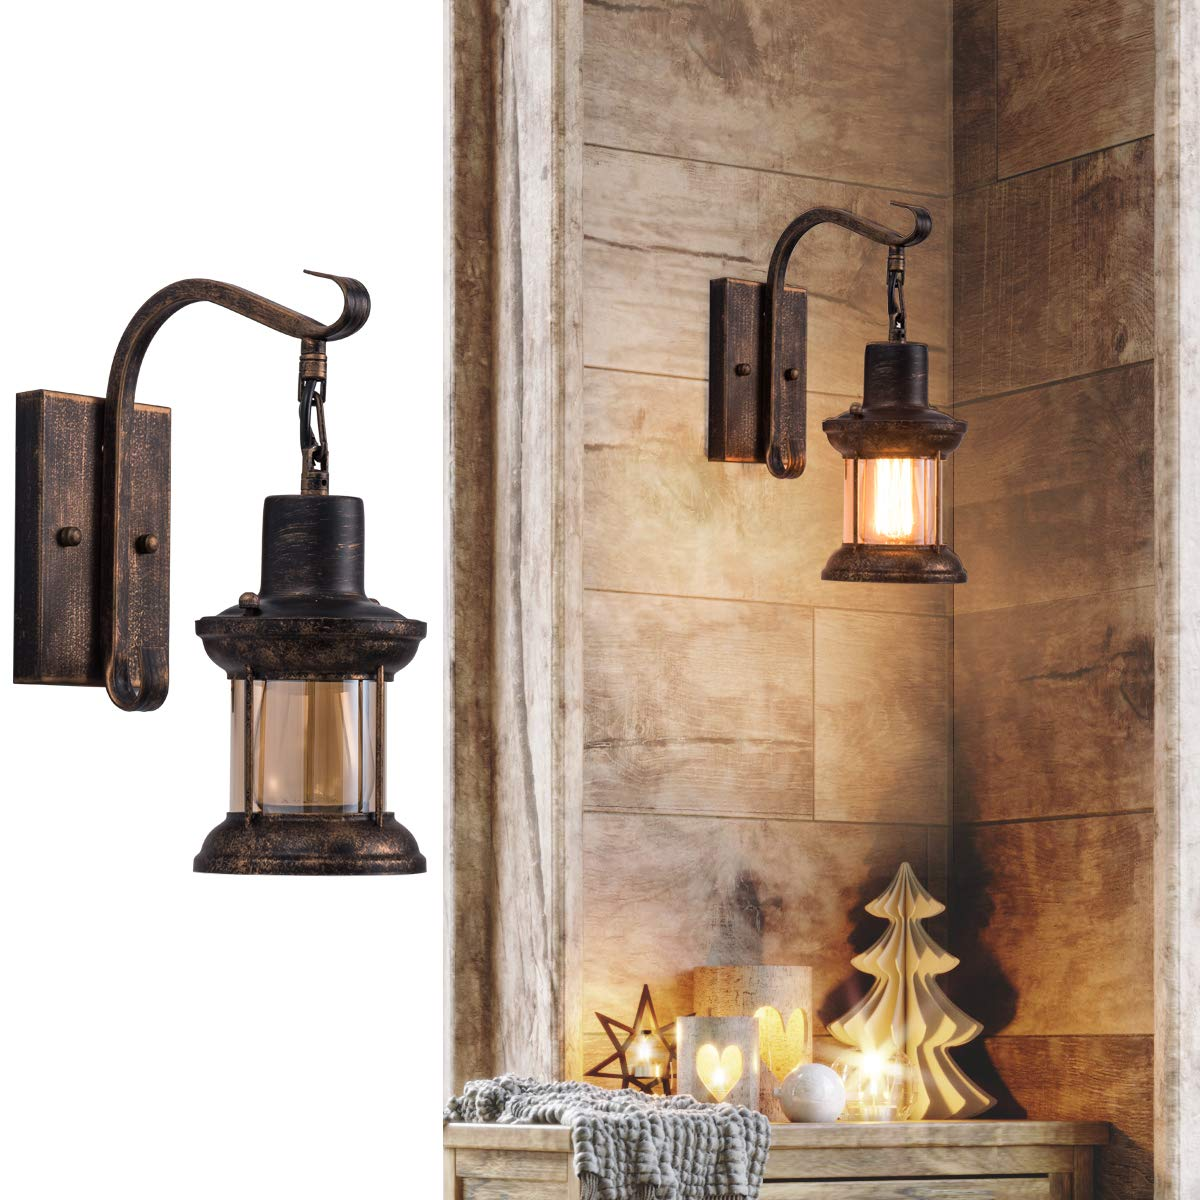 Rustic Indoor Light, Oil Rubbed Bronze Finish Vintage Wall Sconce Fixture Industrial Lamp Glass Shade Decor Lantern Lighting Farmhouse Sconces Metal Lights for House Bedroom Living Room Cafe(1 Pack)